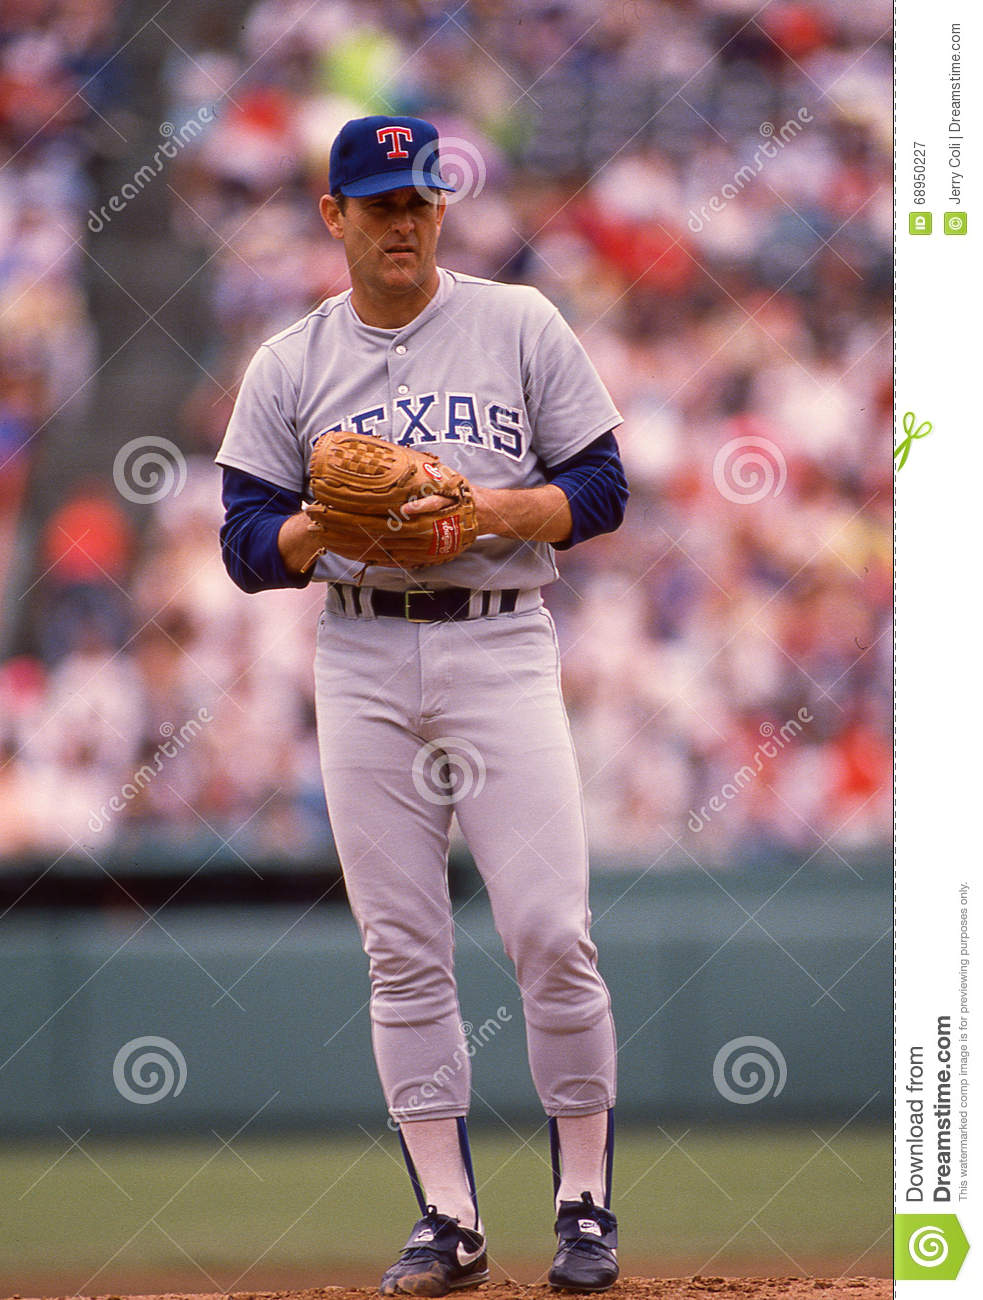 a biography of nolan ryan a former pitcher in the major league baseball 1966-1993, t:r, 11x so leader, born in tx 1947  players teams seasons  leaders mlb scores mlb playoffs  nolan ryan  standard pitching   baerga trade wasn't great for the indians, but was even worse for the mets: it's .